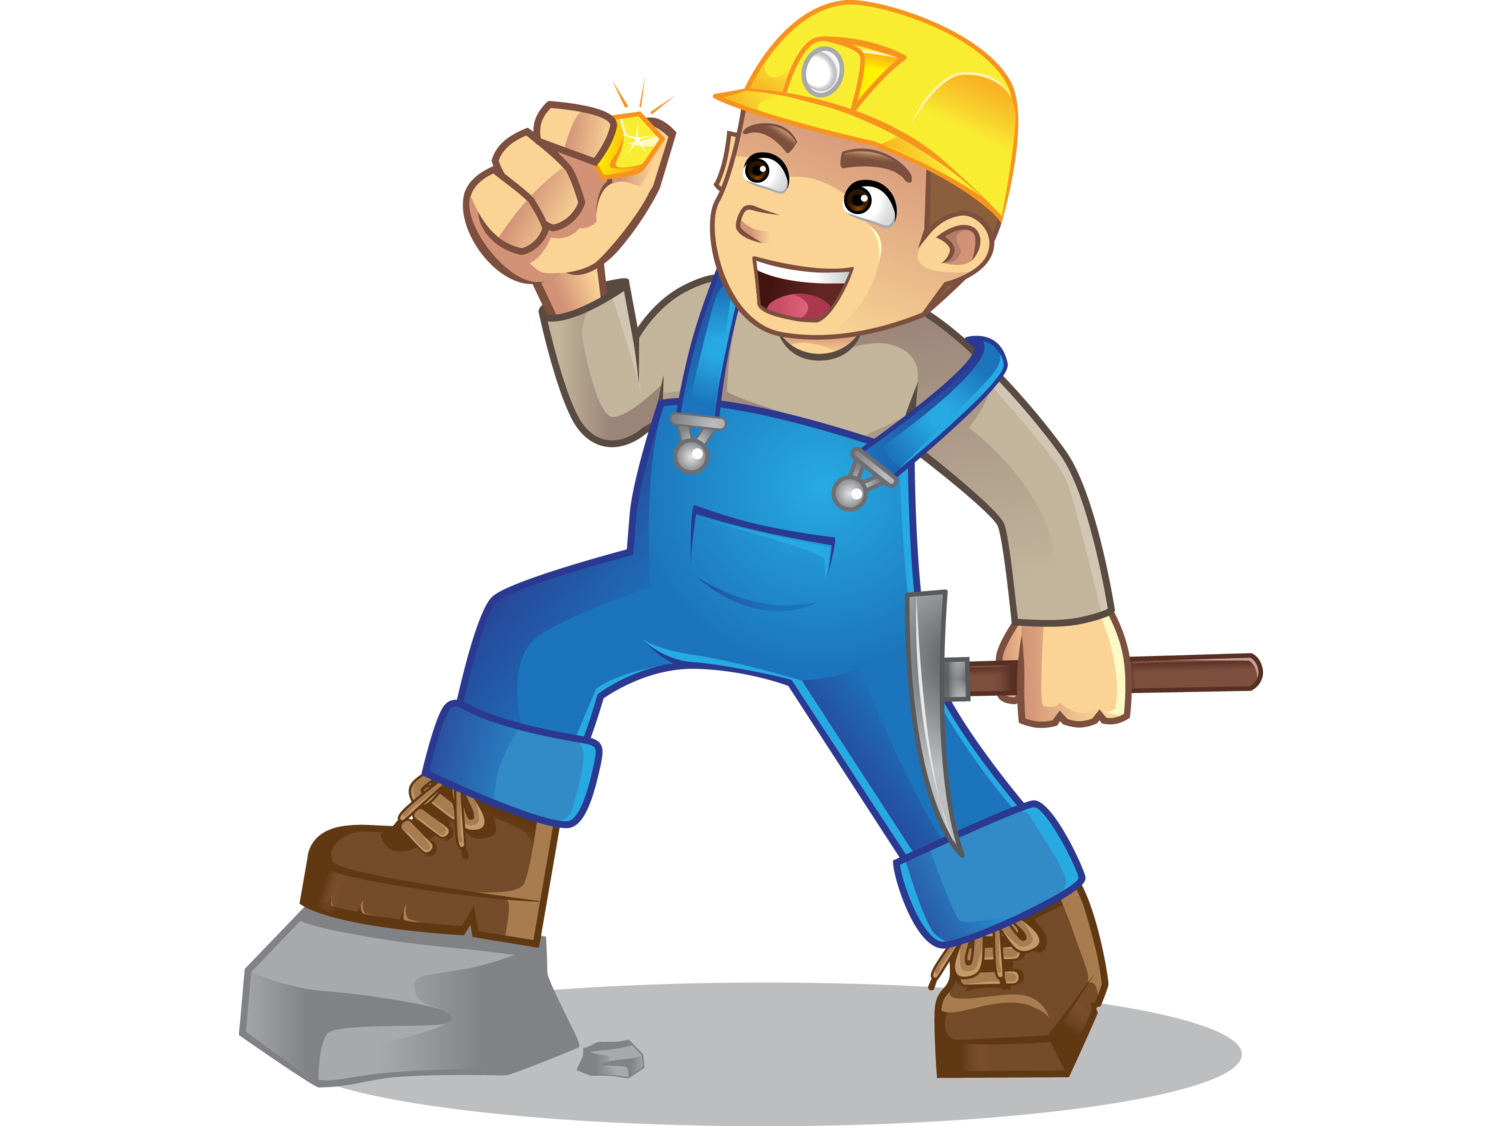 Working vector miner. By irwan januarso dribbble